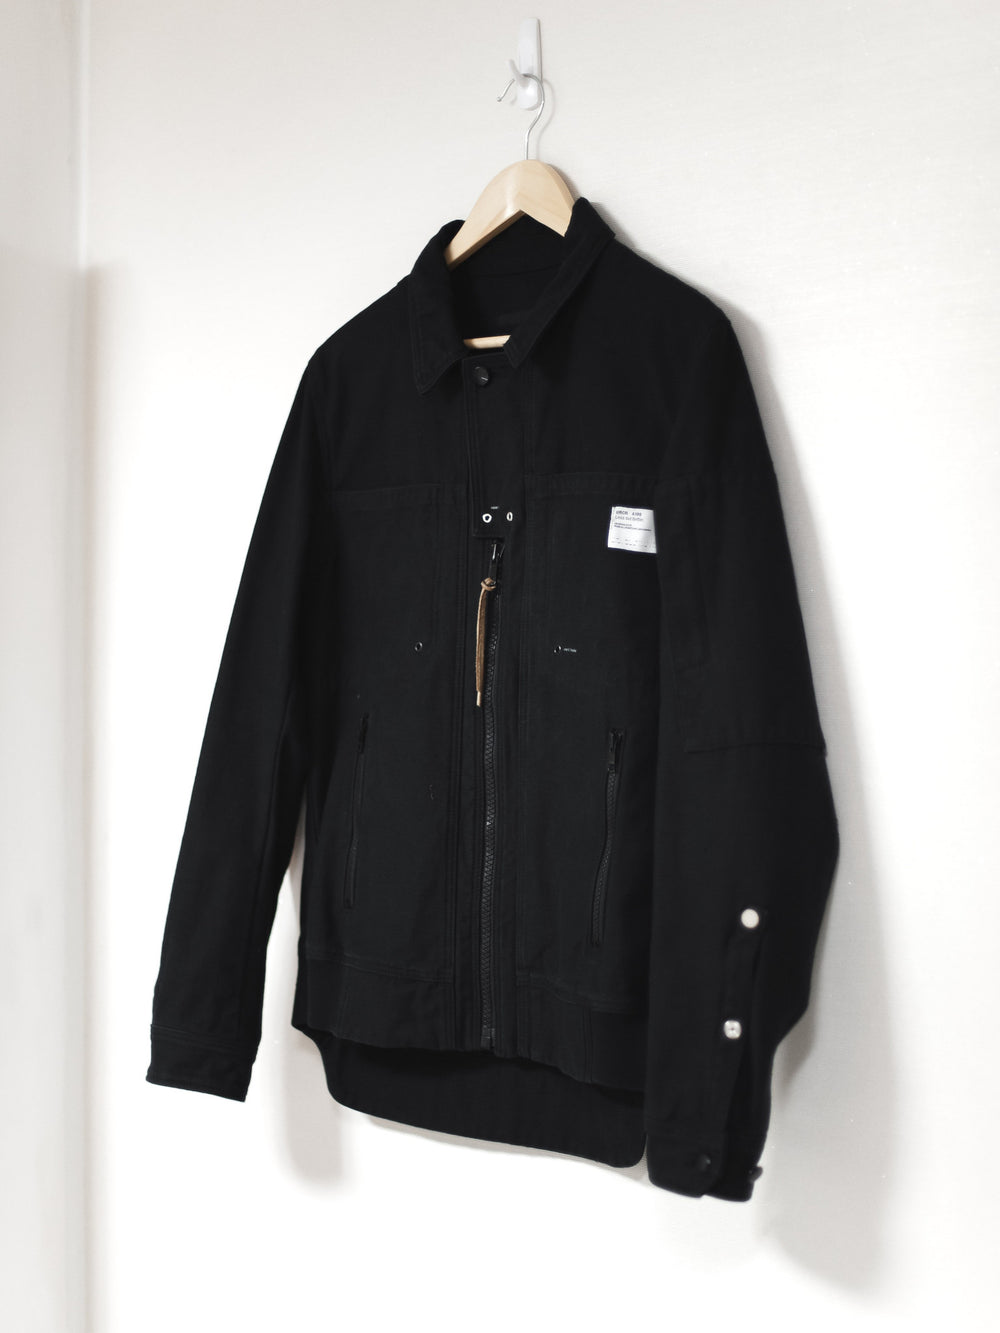 Undercover SS10 Less But Better Denim Jacket